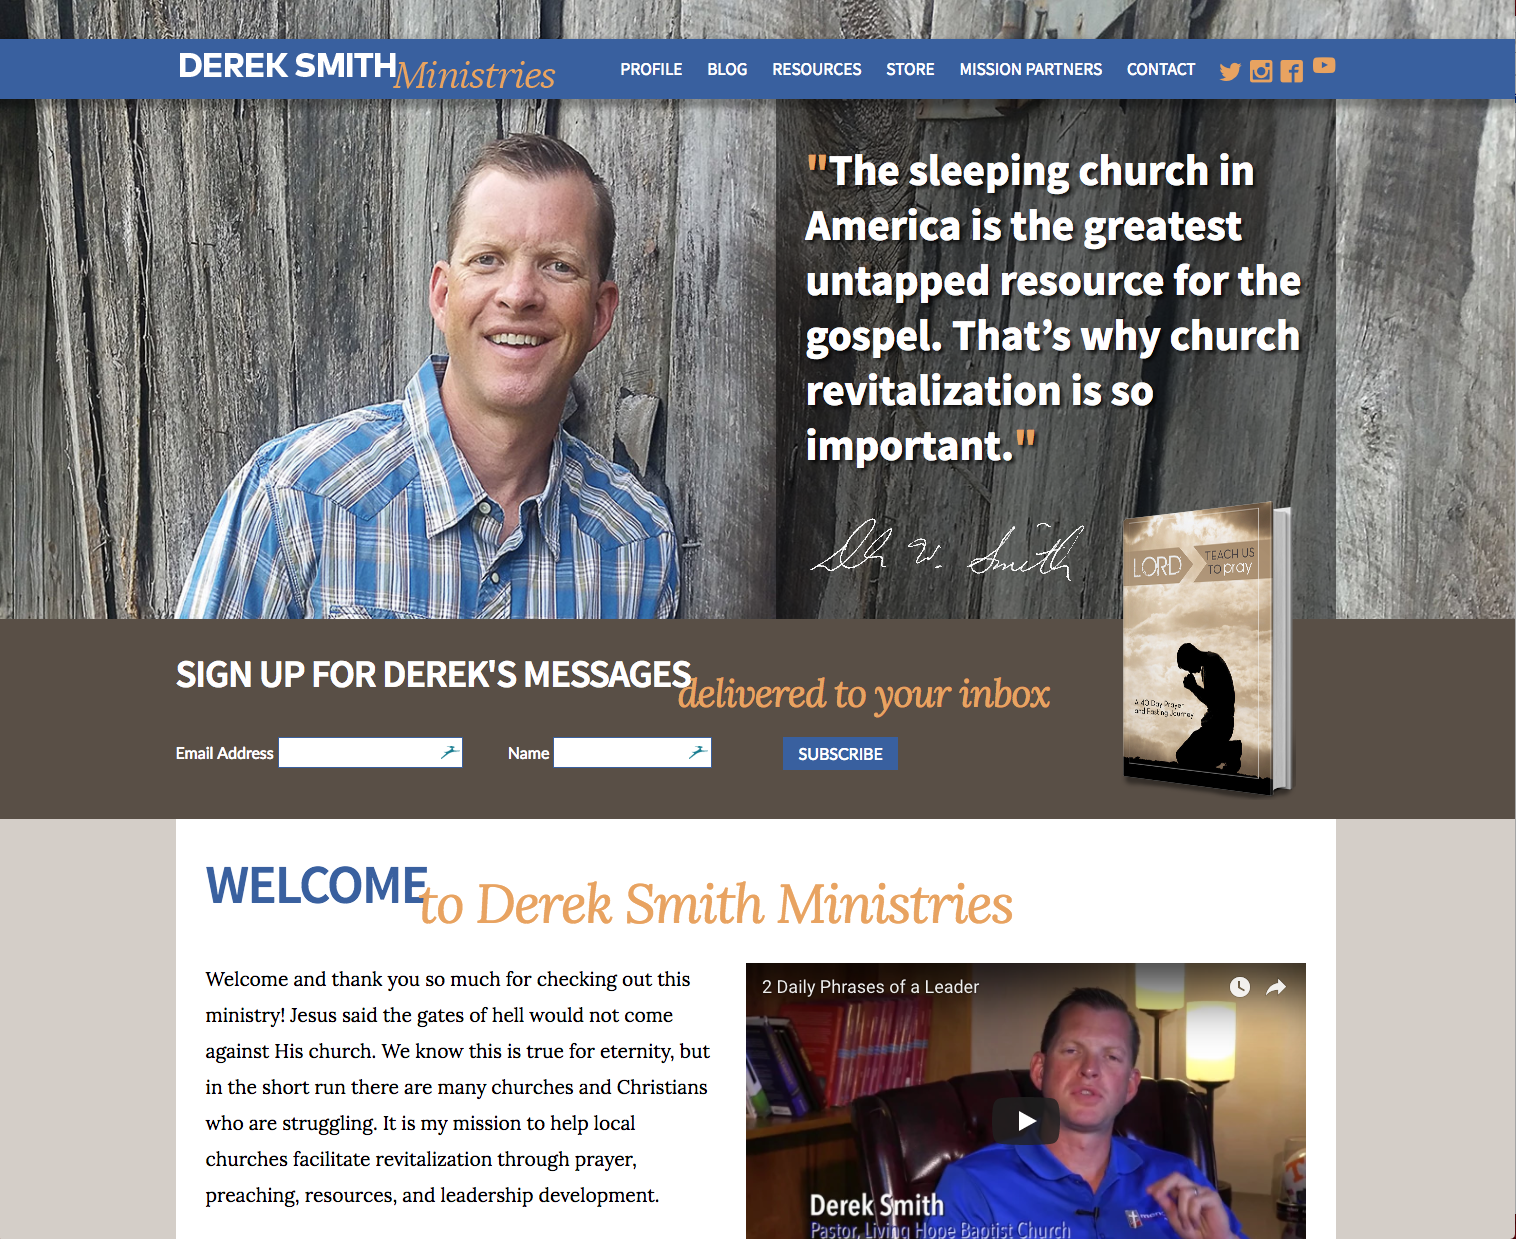 Derek Smith website